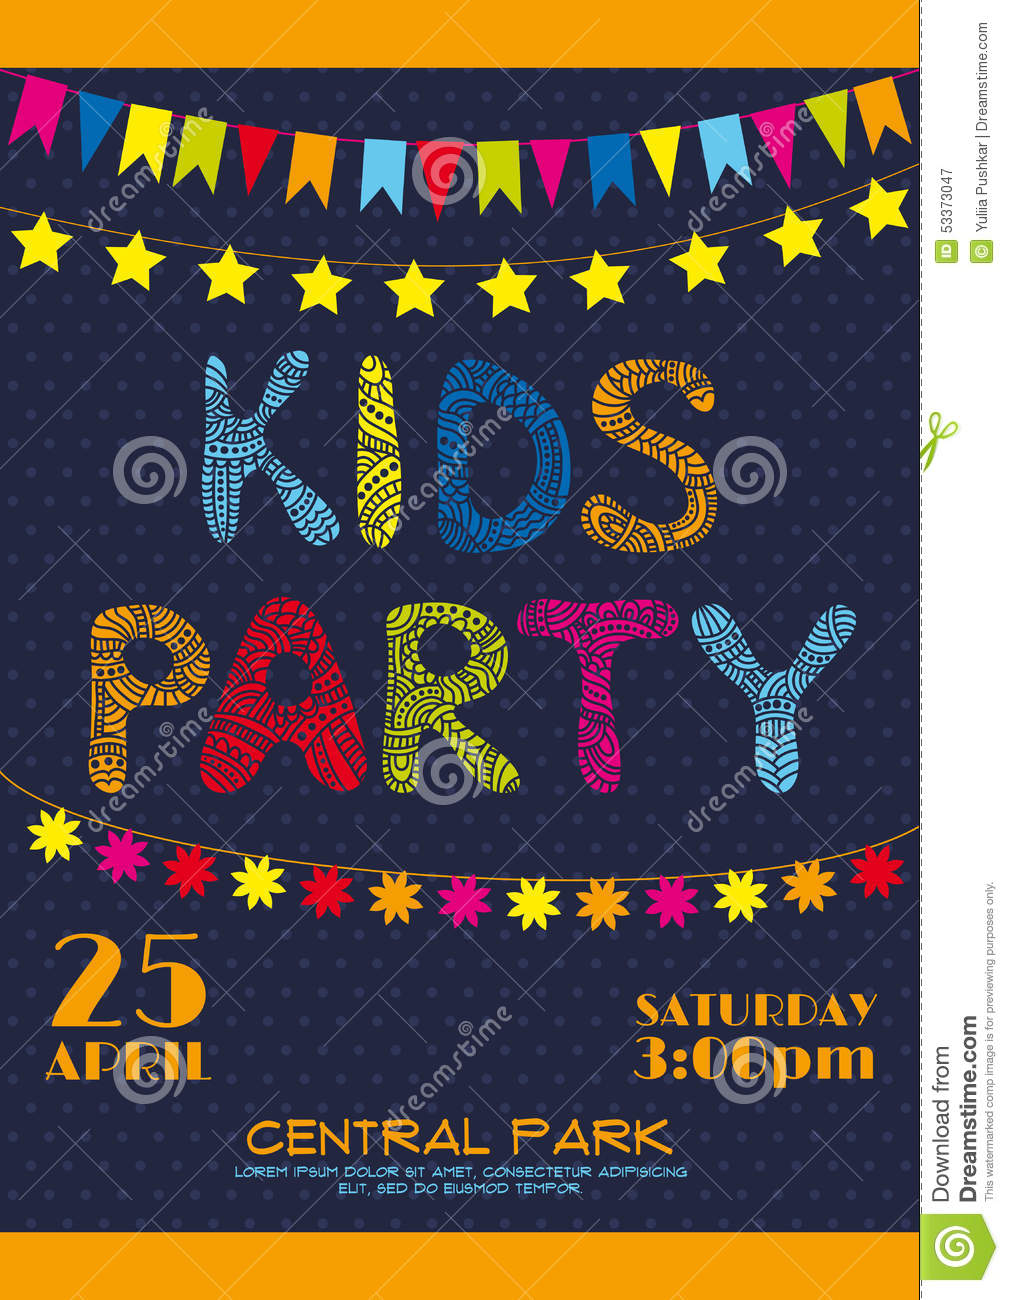 kids party invitation poster stock vector illustration of carnival